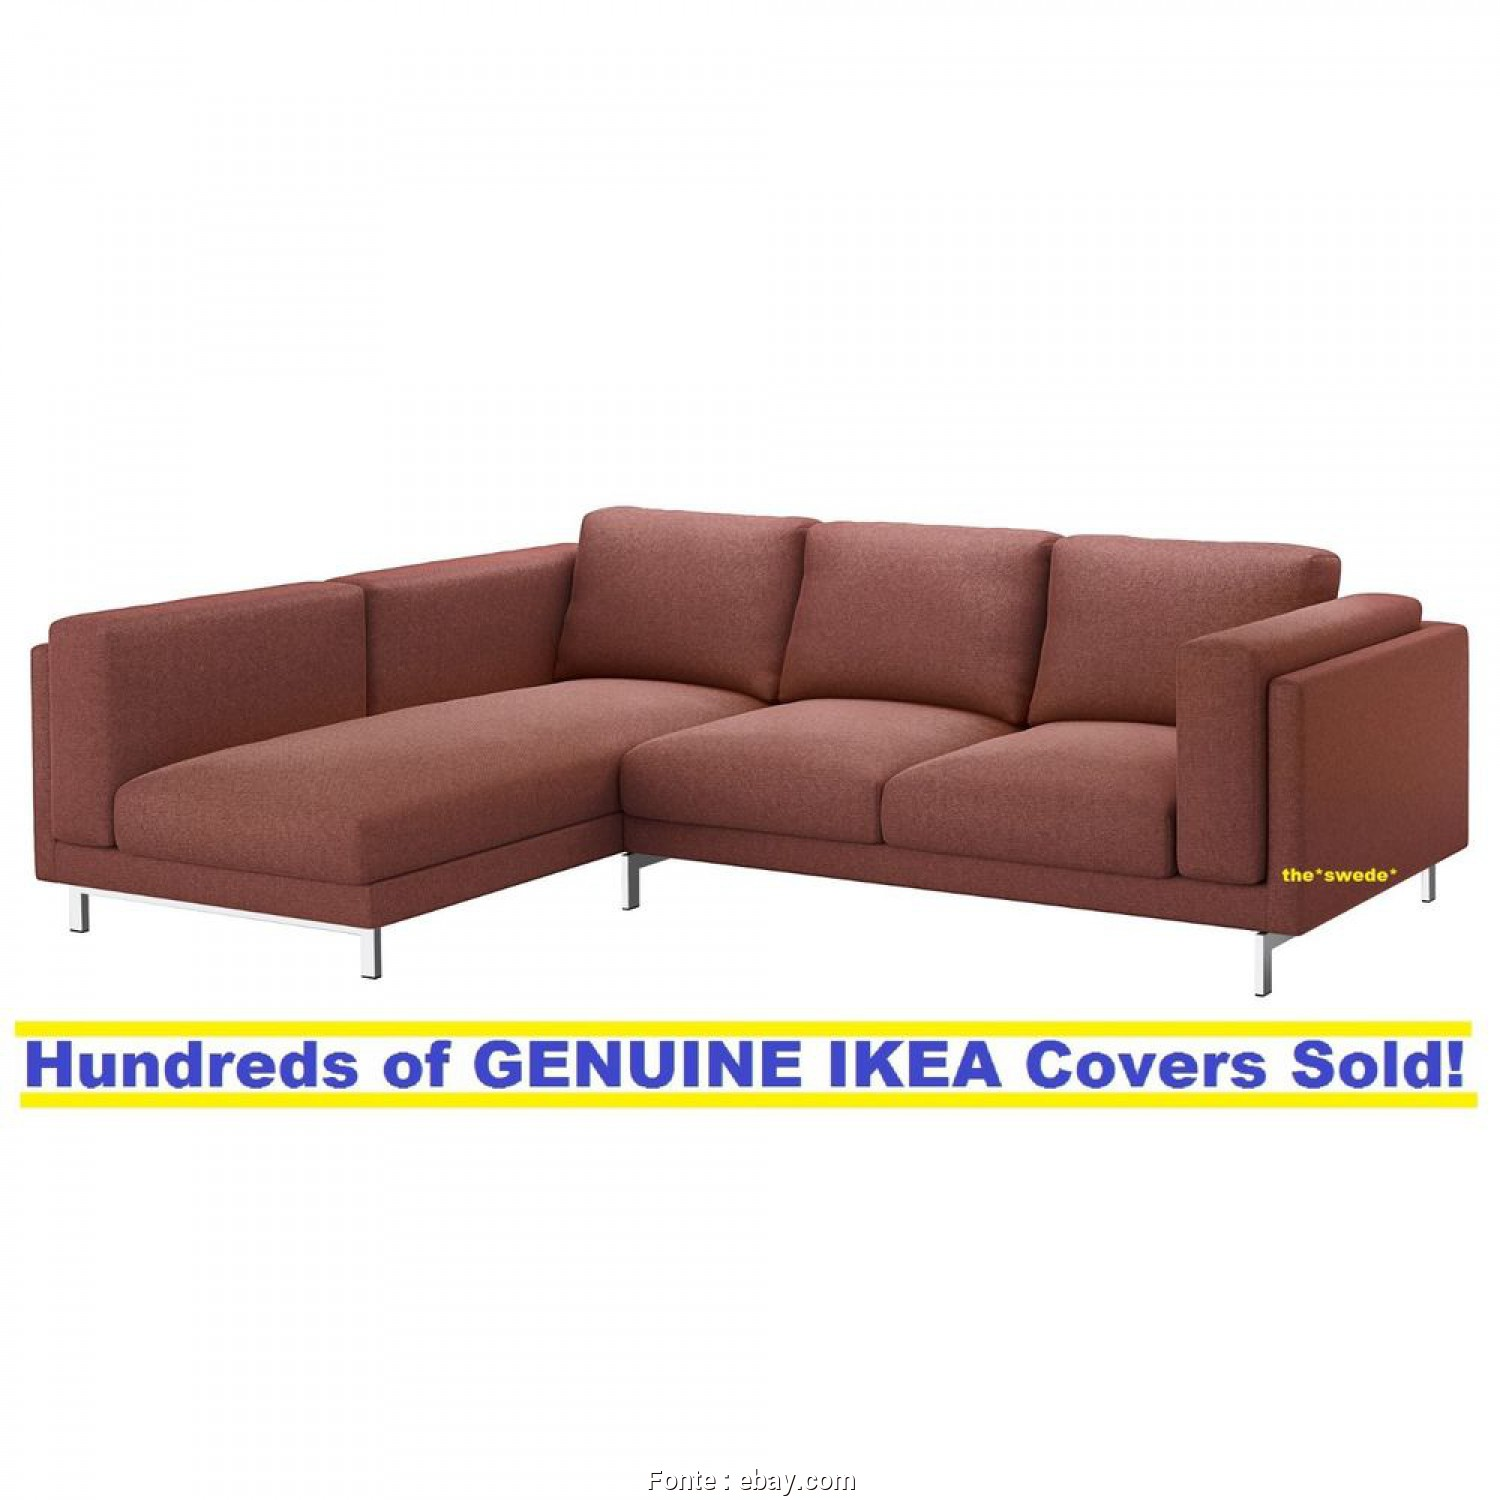 Ikea Beddinge Cover Ebay, Delizioso Details About IKEA NOCKEBY Sofa With Chaise LEFT Cover Slipcover TALLMYRA RUST New! SEALED!